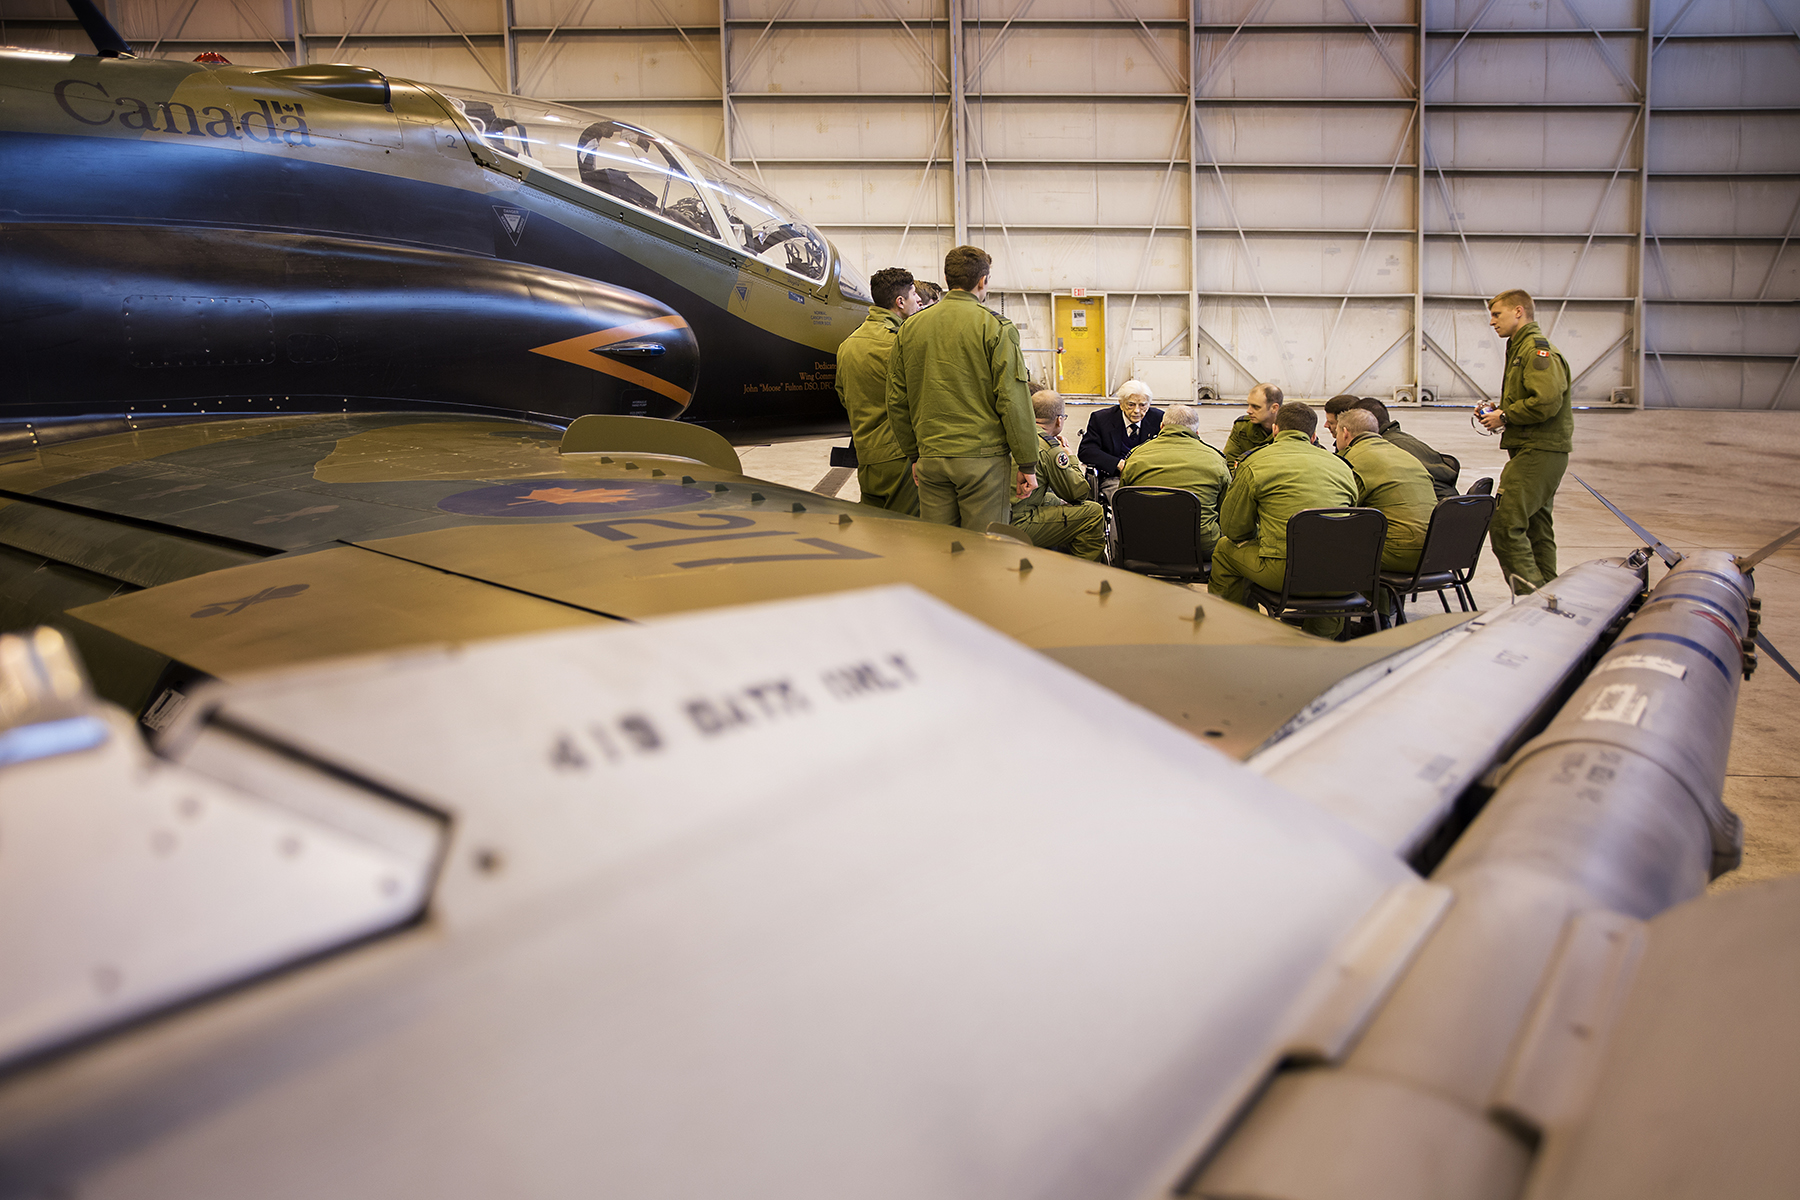 RCAF 419 Tactical Fighter (Training) Squadron members meet with Royal Canadian Air Force Squadron Leader (retired) George Sweanor beside one of their aircraft on February 23, 2018, to talk about the squadron's Second World War service. Squadron Leader Sweanor was a founding member of No. 419 Squadron in 1941. PHOTO: NORAD/USNORTHCOM Public Affairs